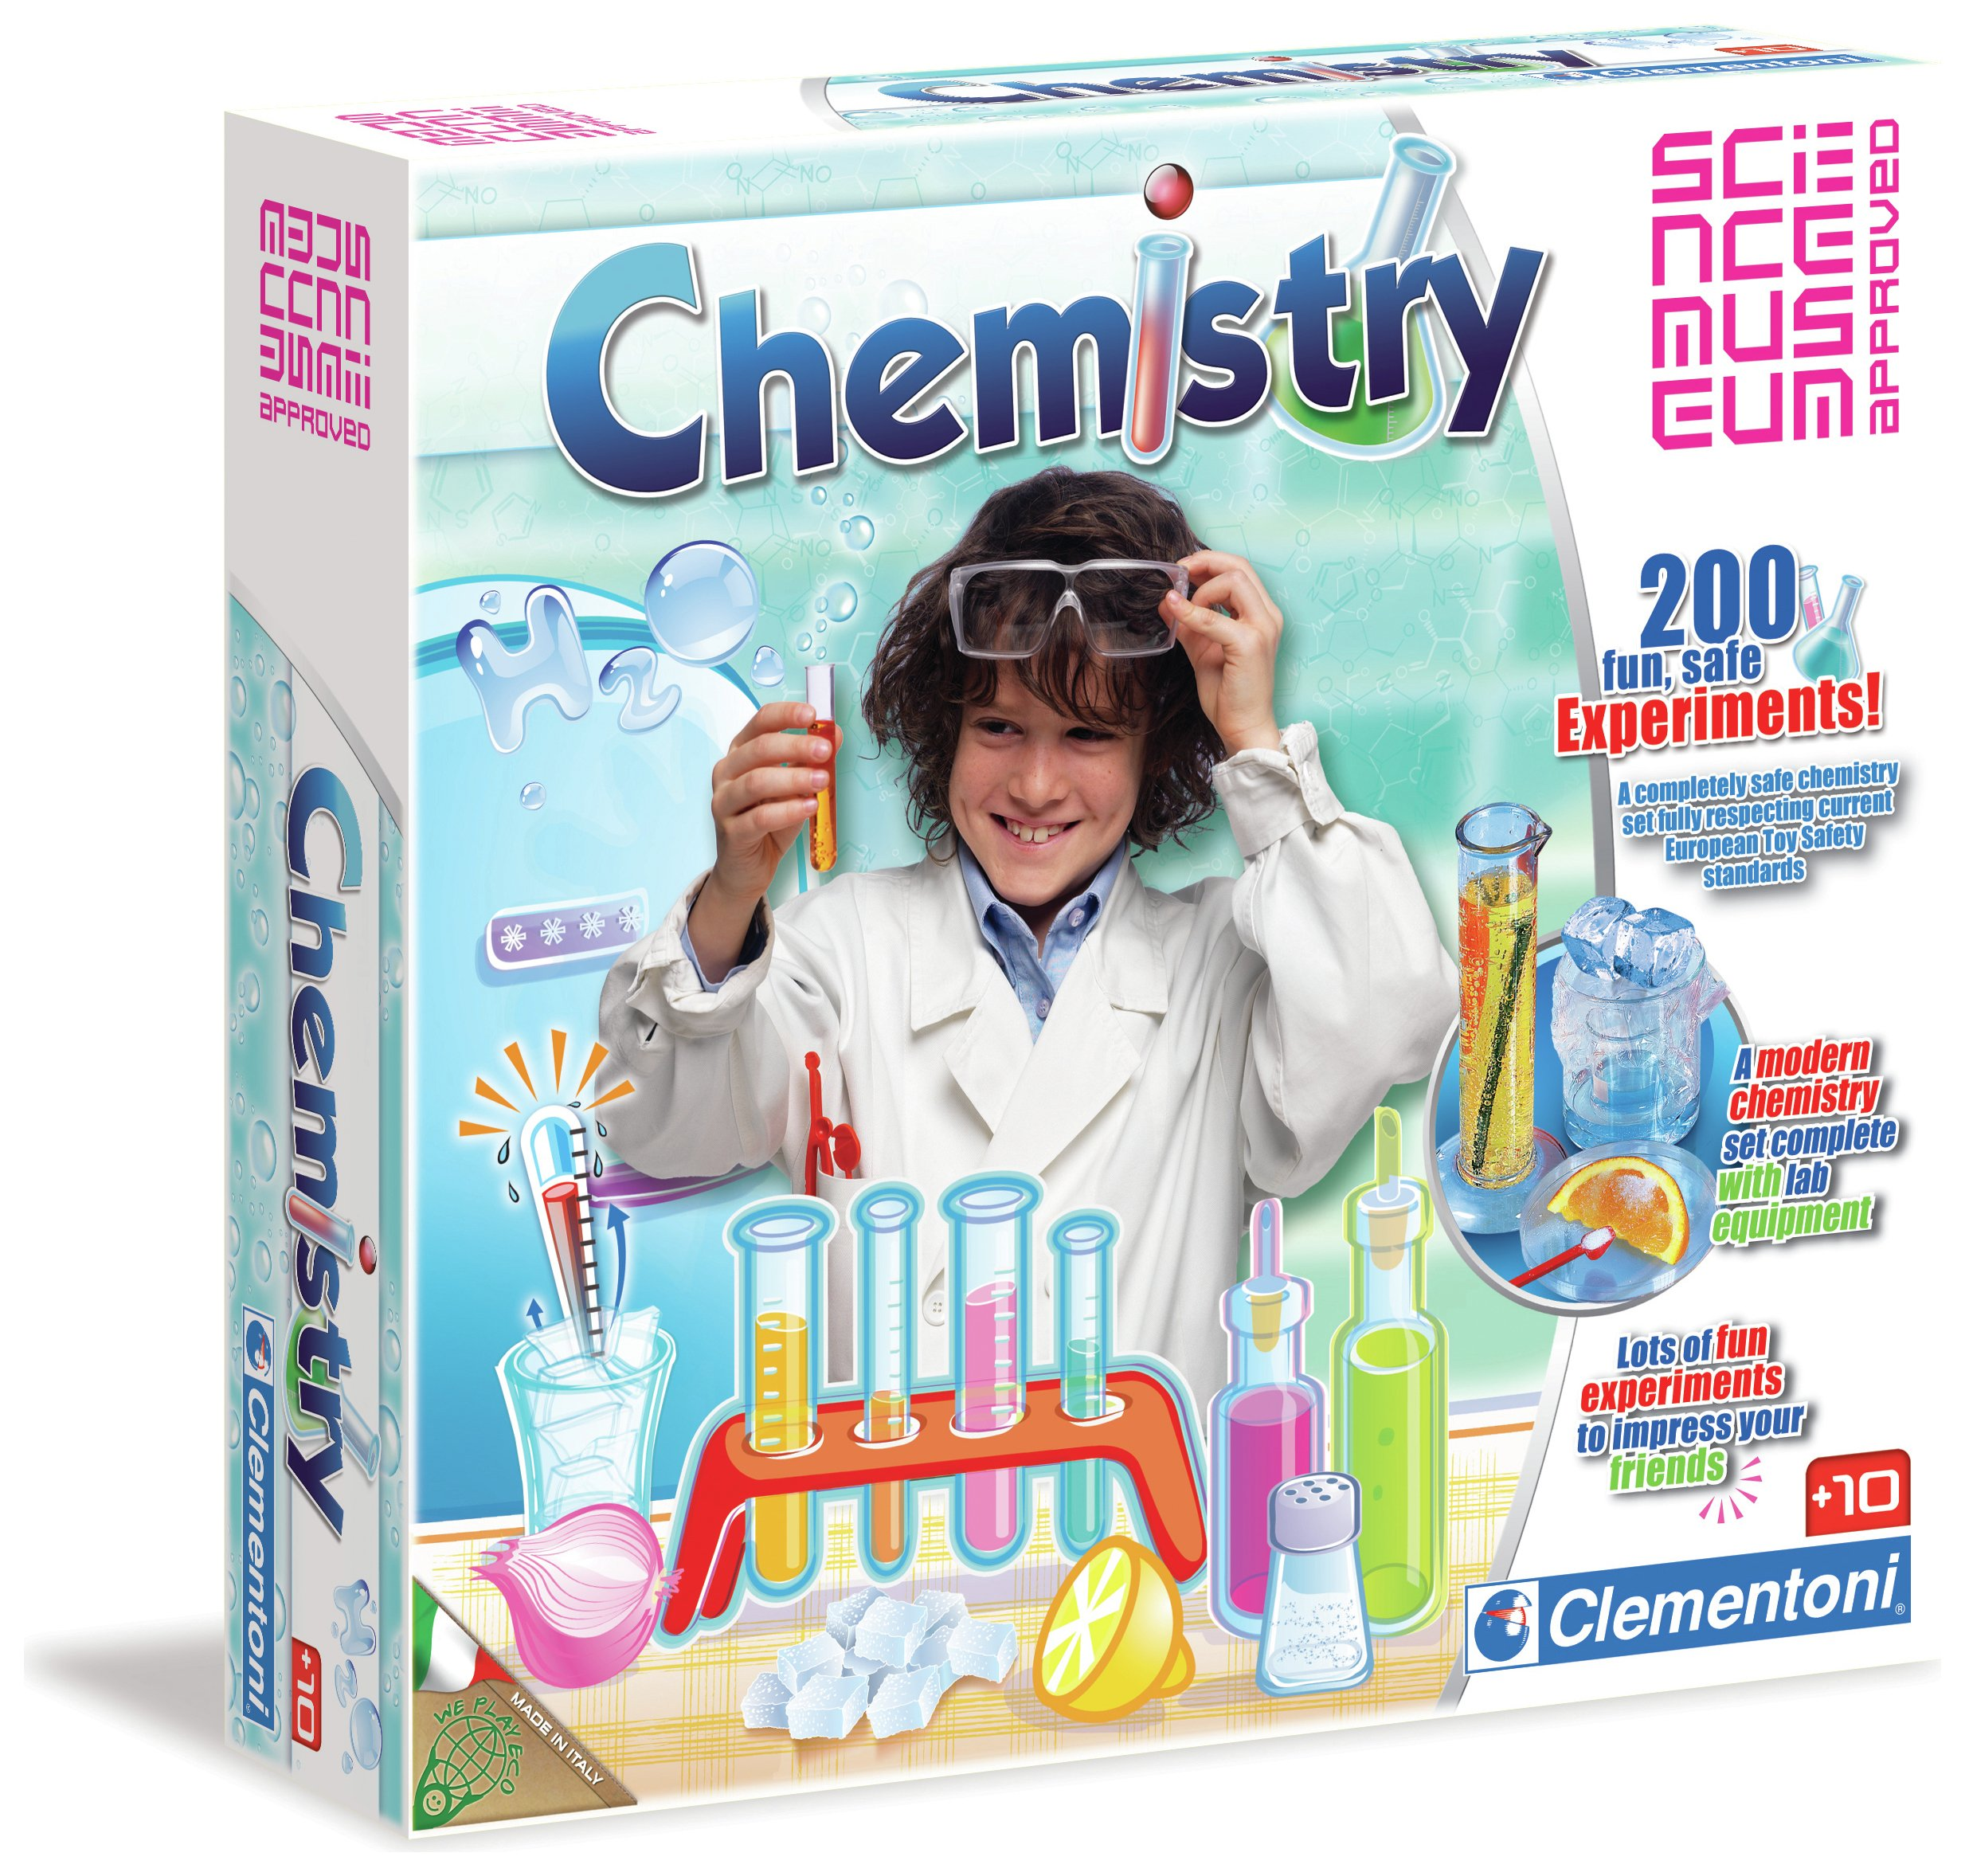 Image of Clementoni Science Museum Chemistry at Home Kit.